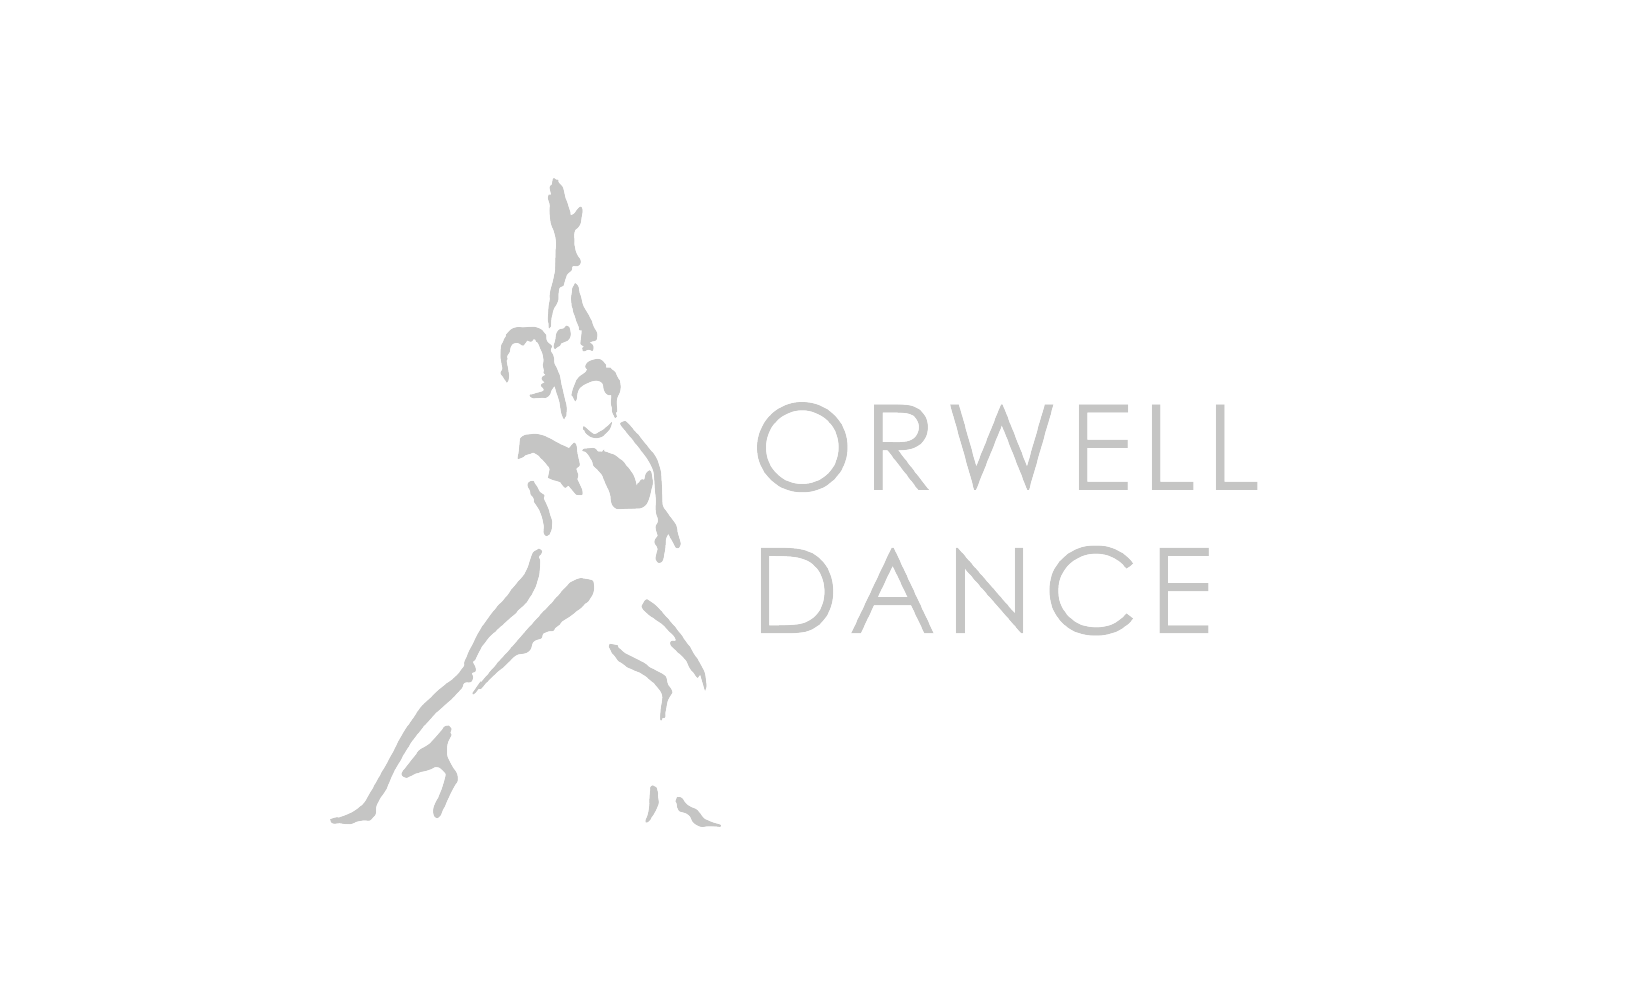 Dance school Customer Logos. ai-22.png